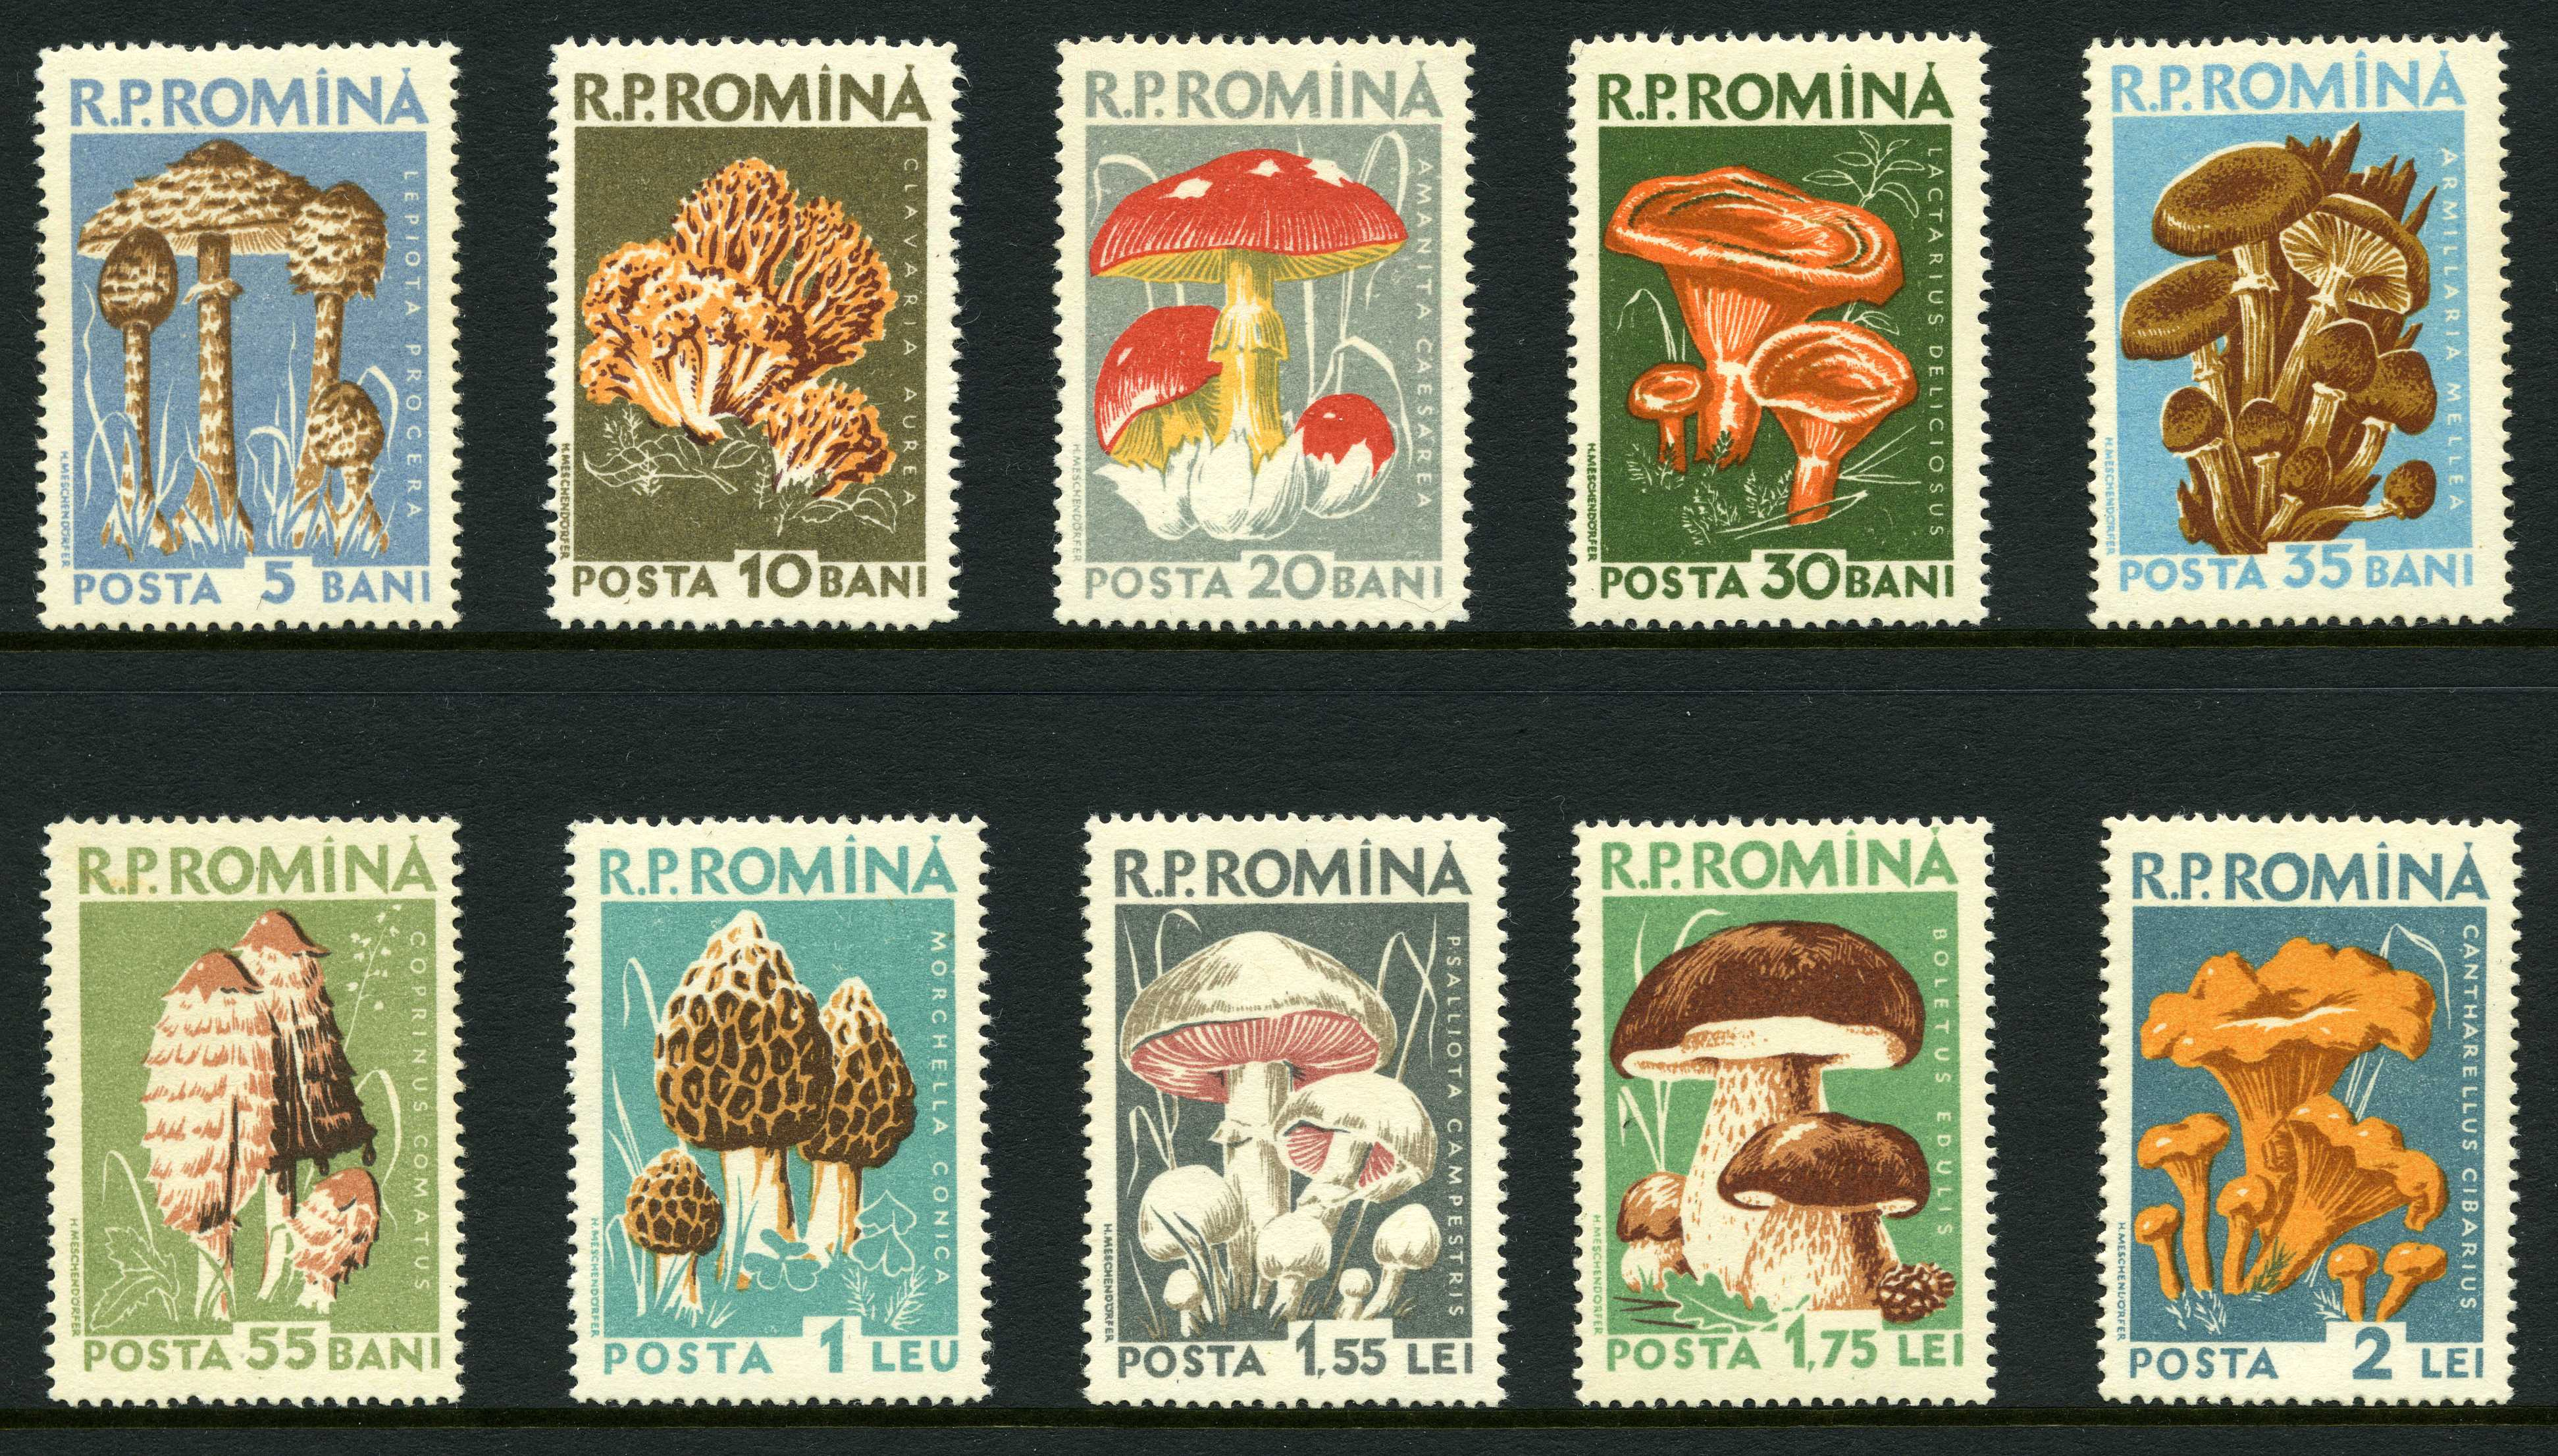 fungi on stamps introduction and references